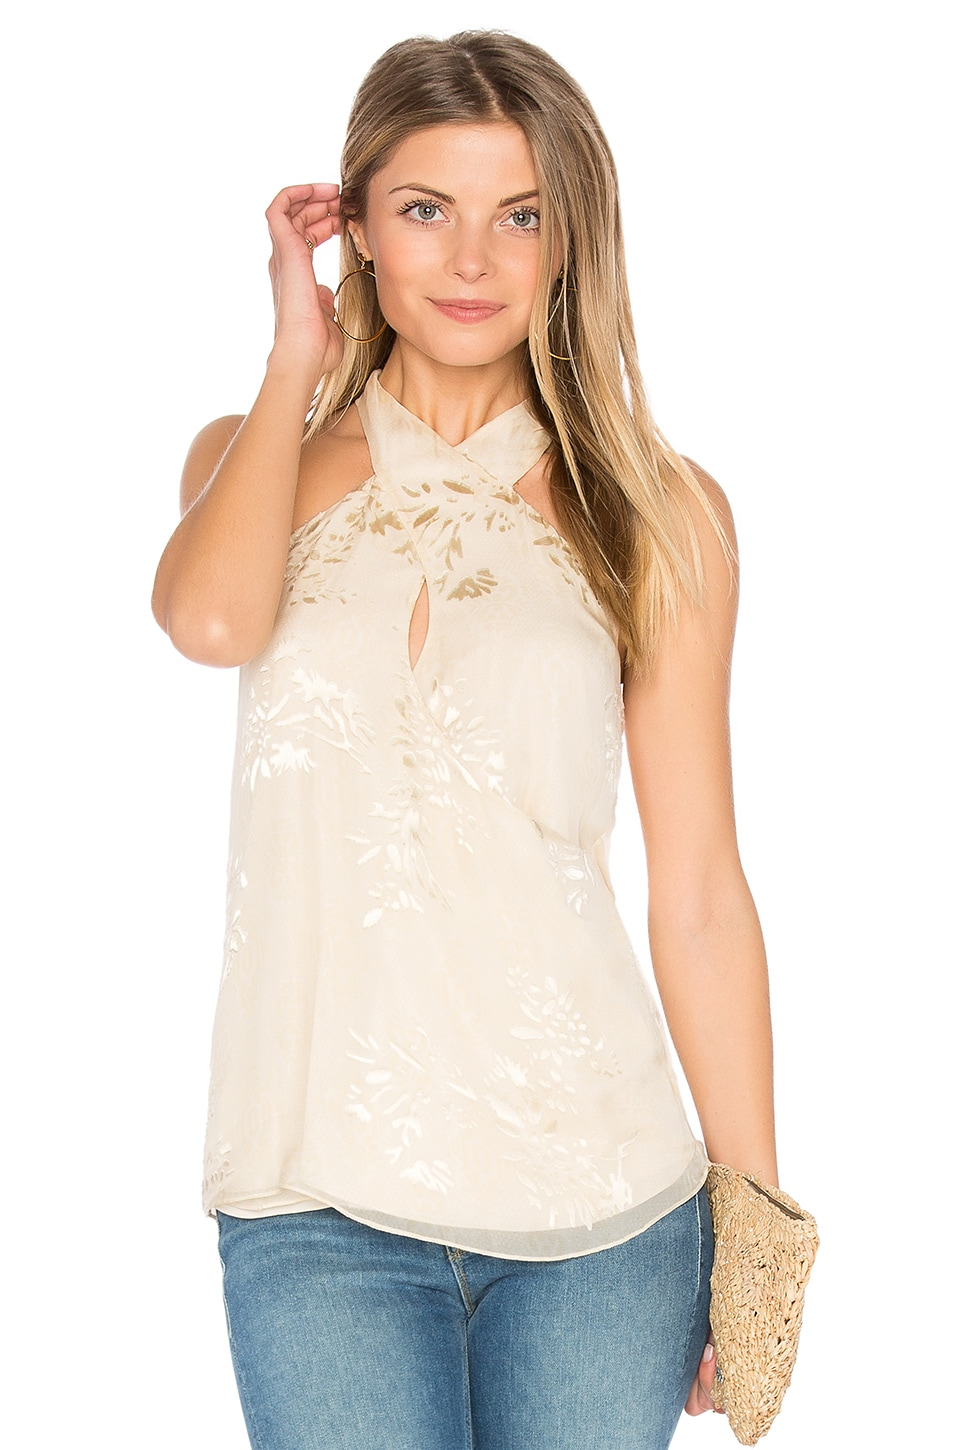 Narcissus Blouse by Haute Hippie